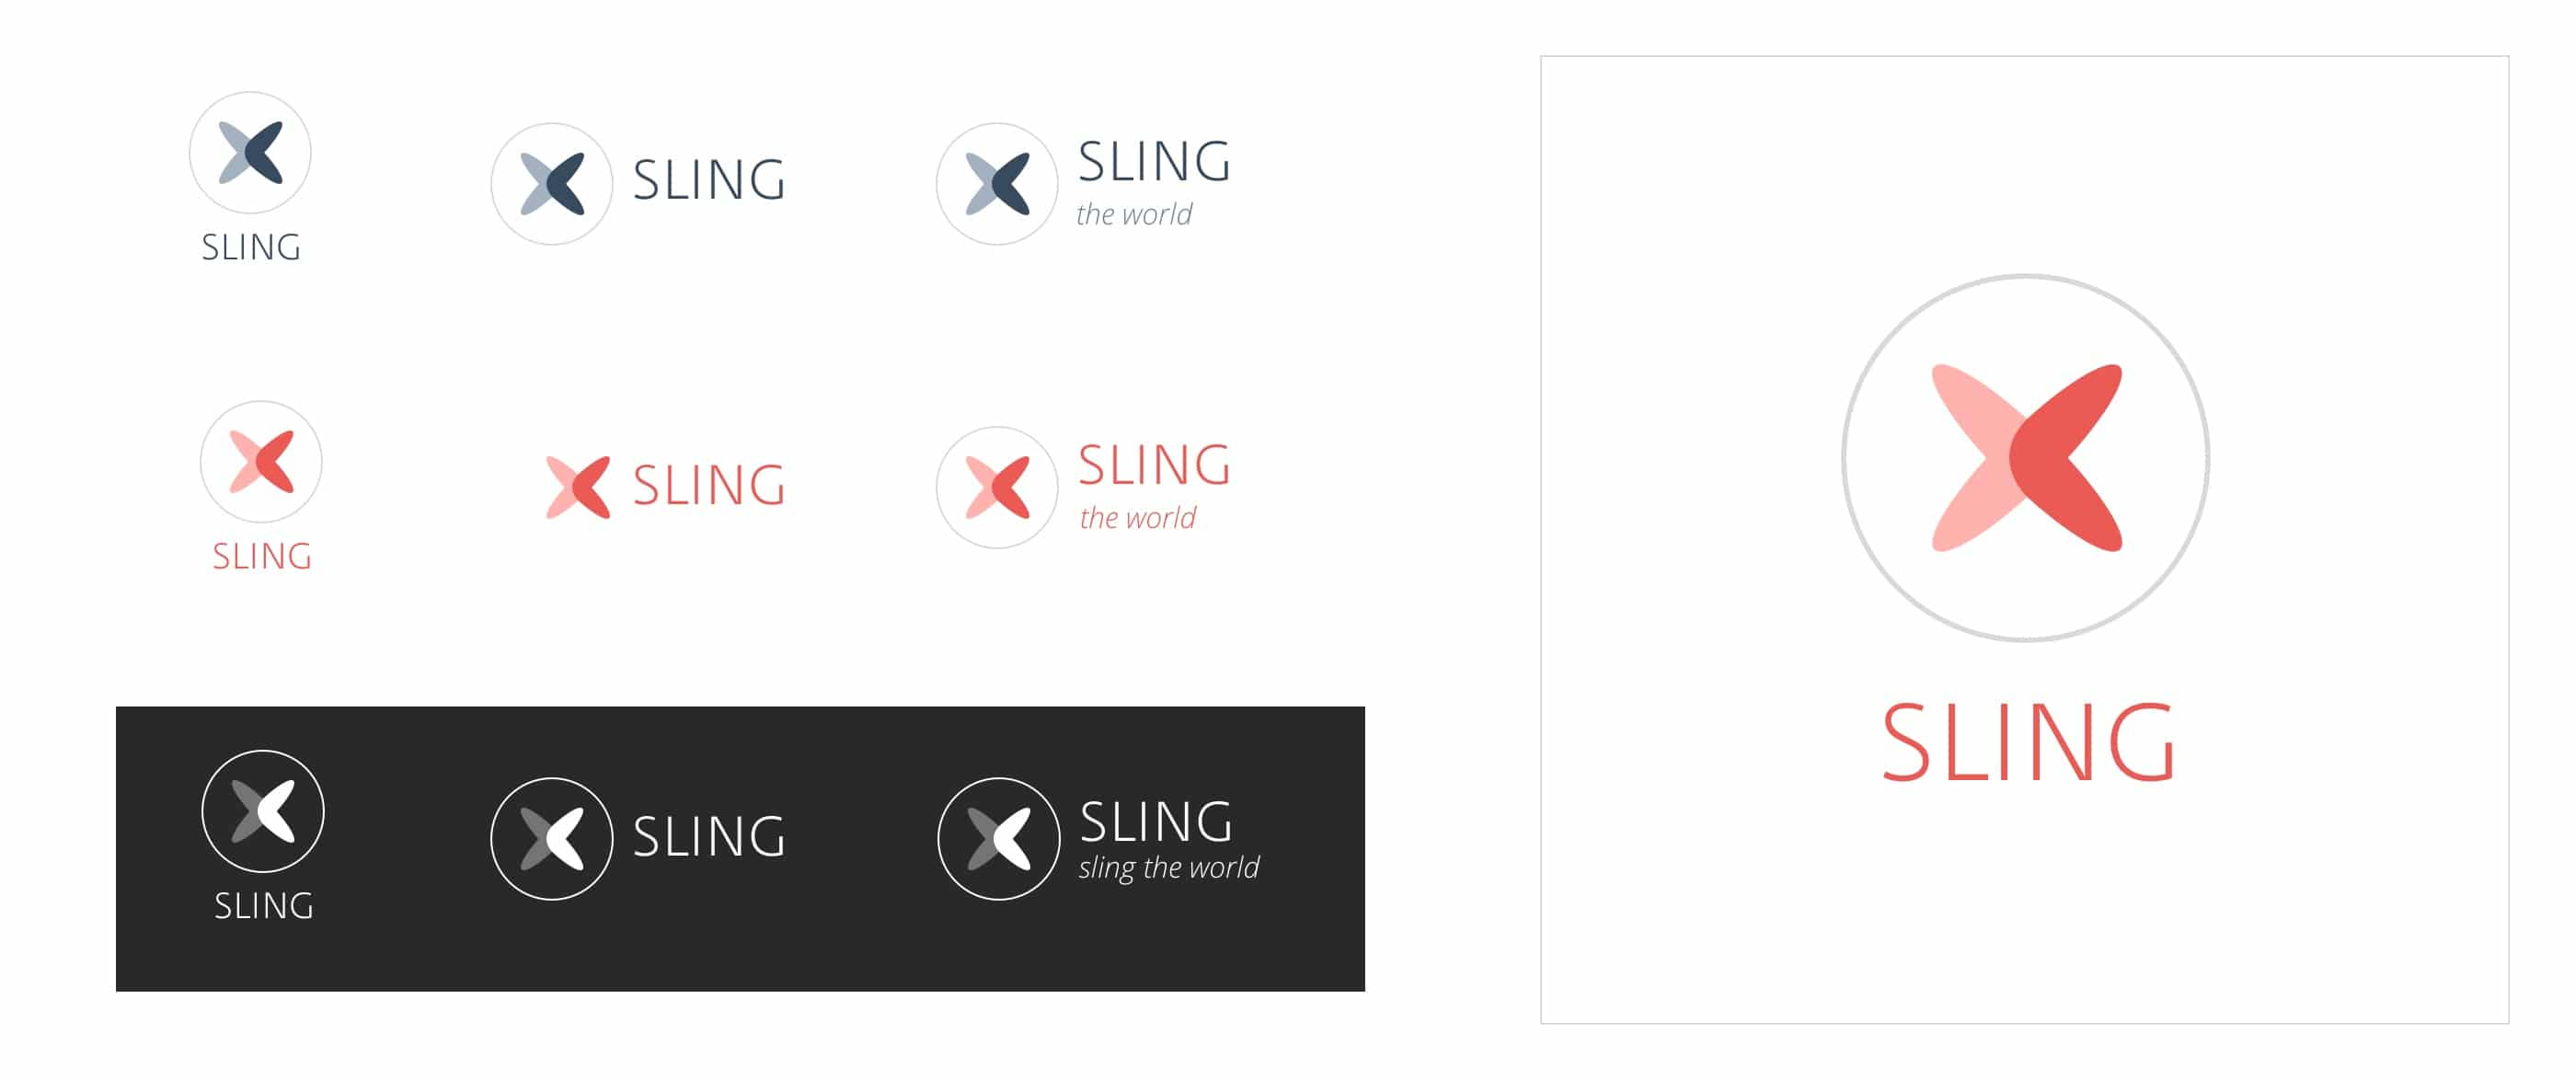 Sling App for iOS / iPhone